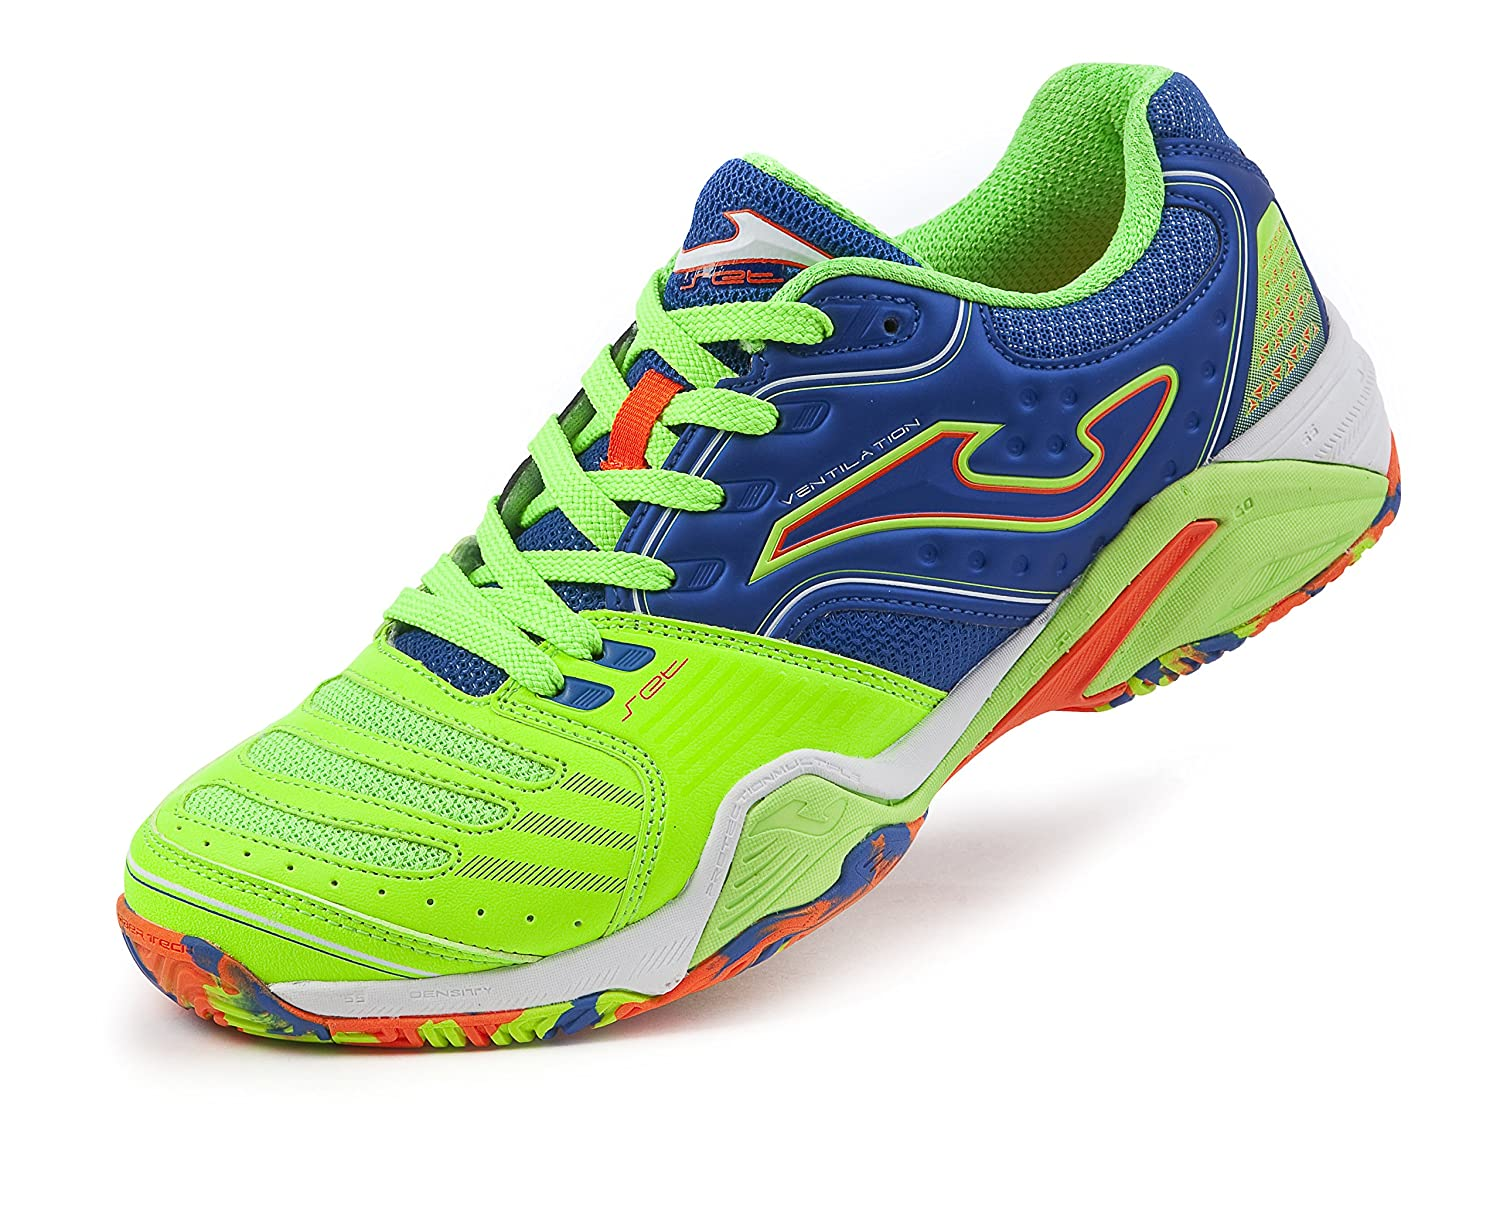 ZAPATILLAS DE PADEL JOMA SET 604 ROYAL FLUOR T-46: Amazon.es ...